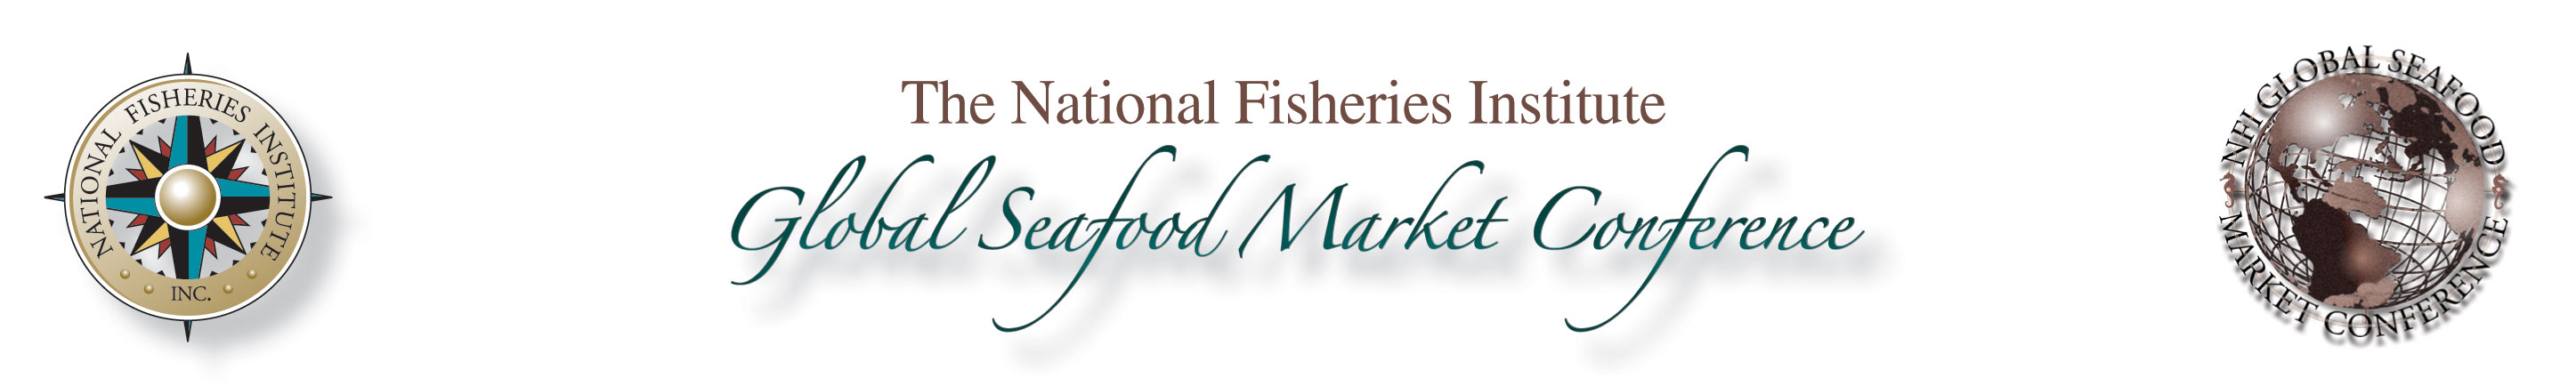 2017 Global Seafood Market Conference